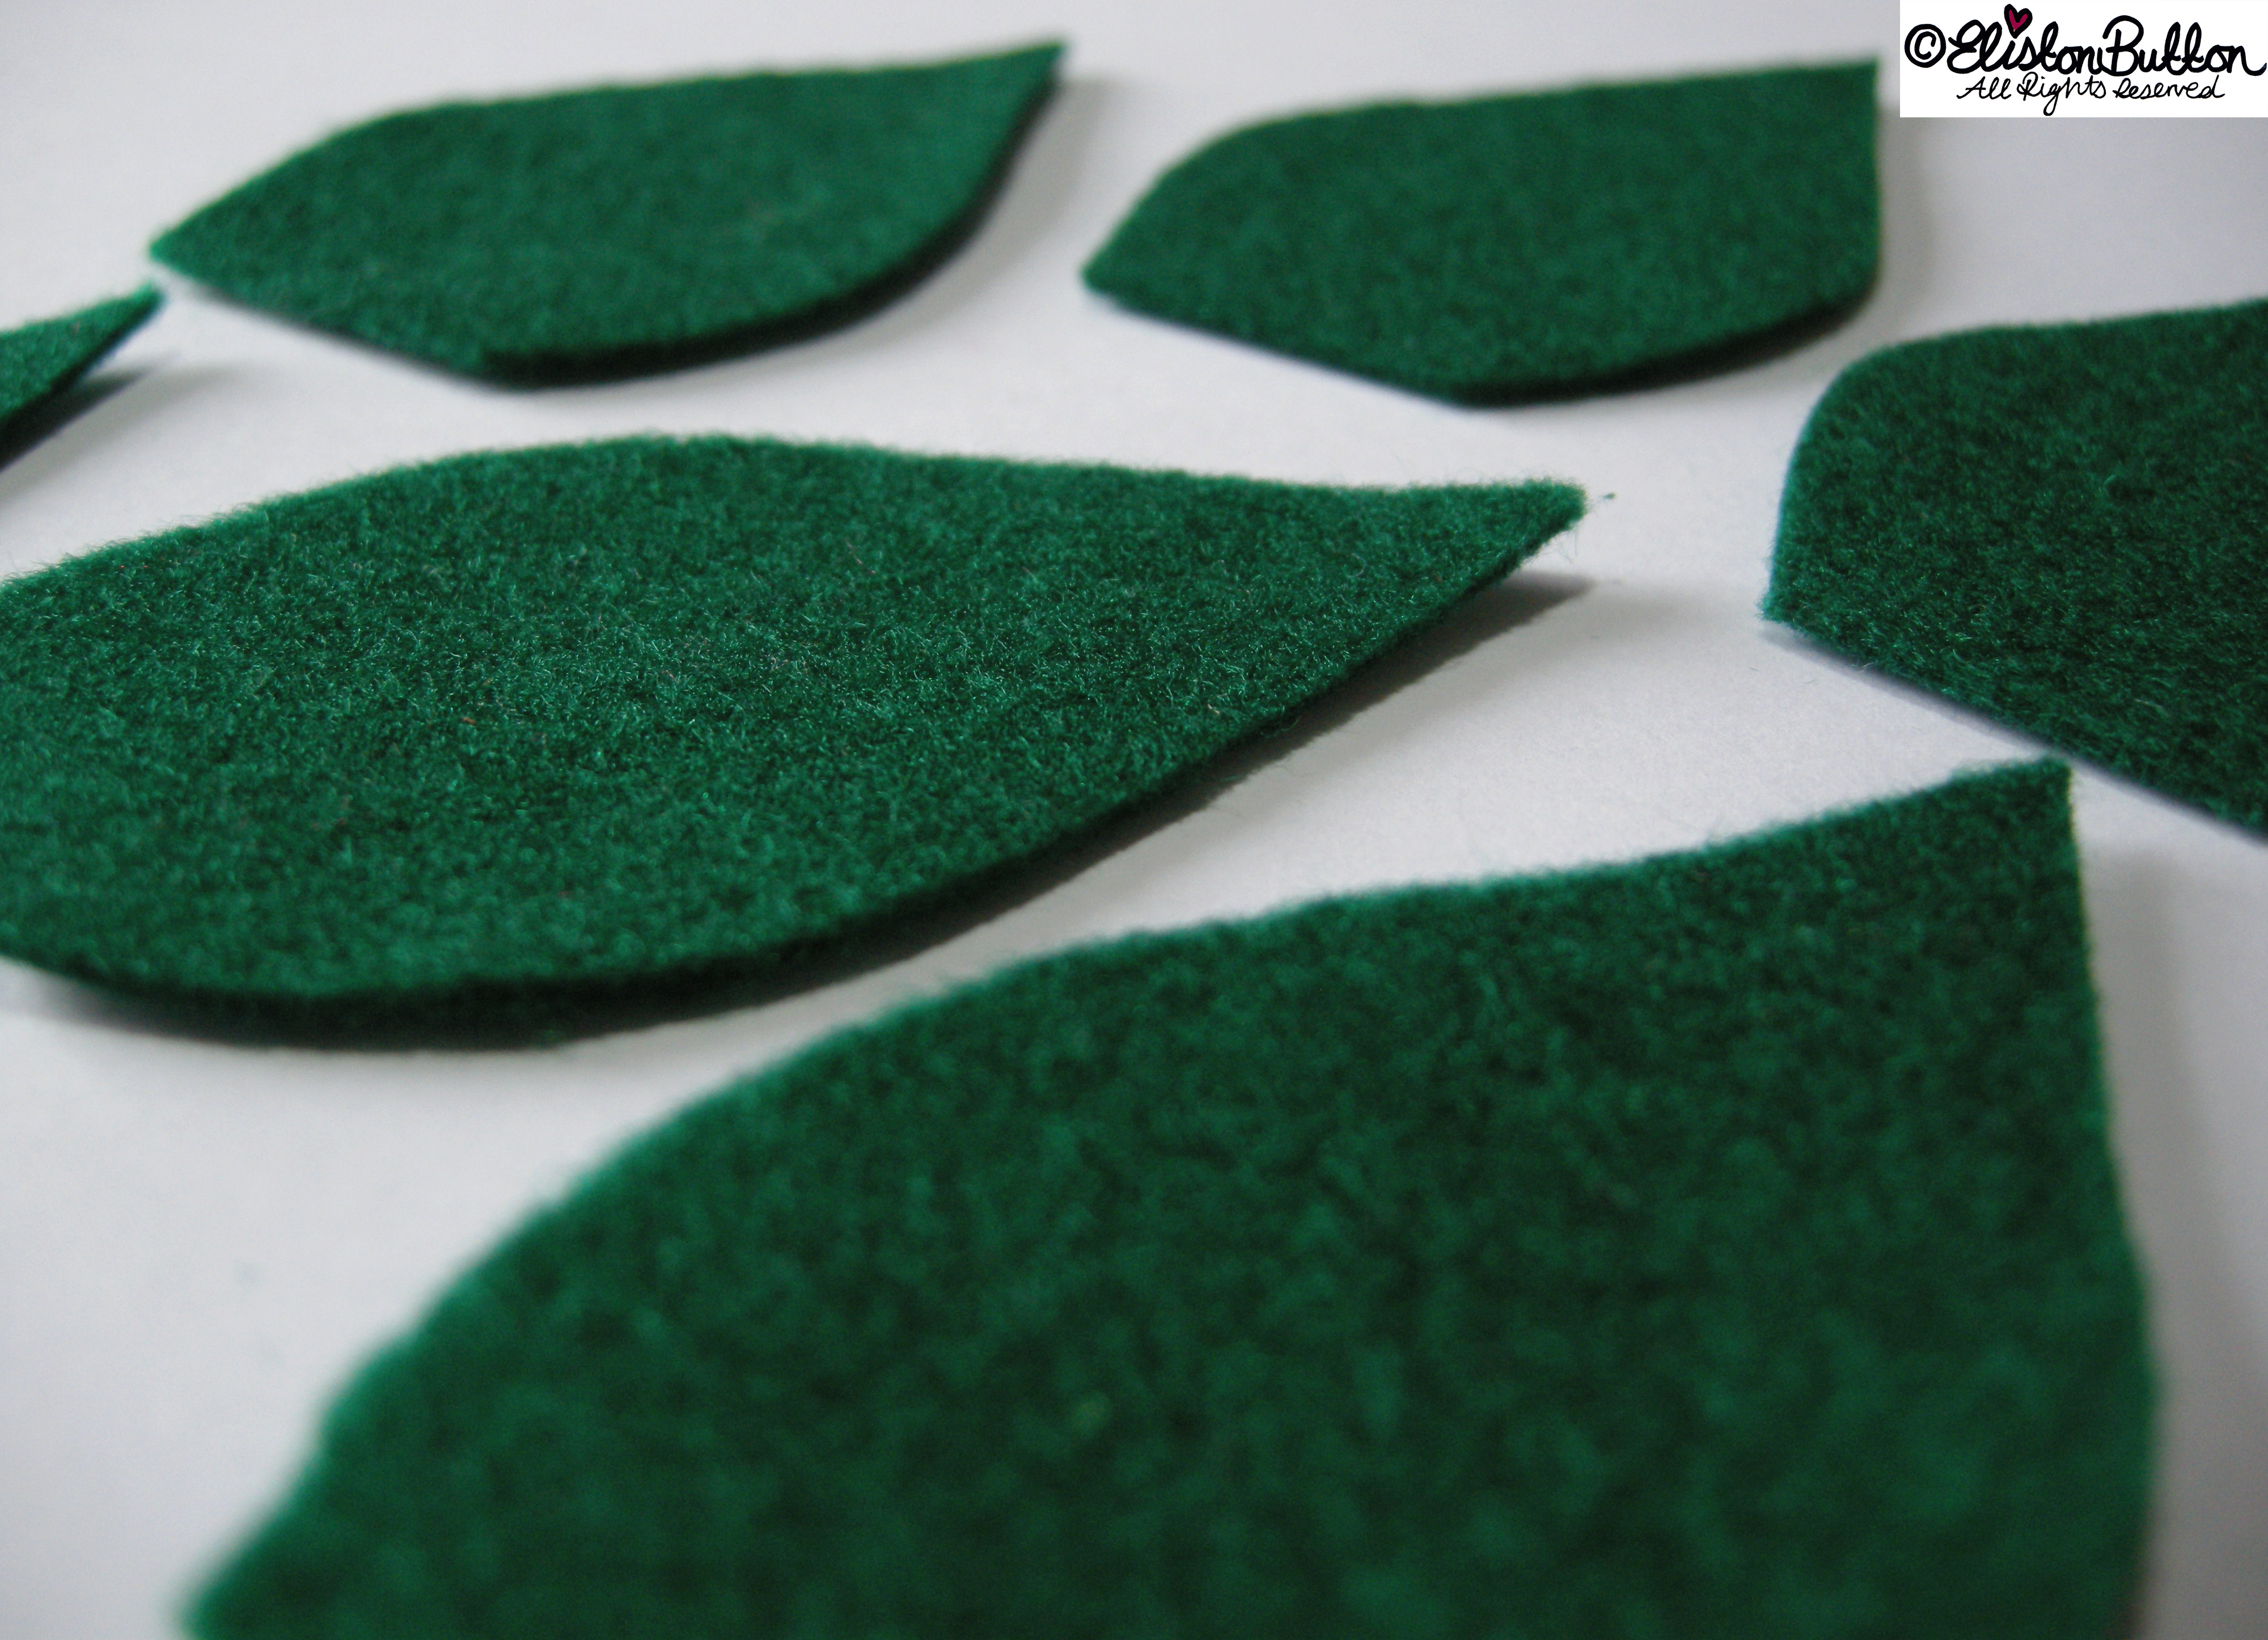 Dark Green Felt Leaf Shapes - 27 Before 27 - Leafy Greens at www.elistonbutton.com - Eliston Button - That Crafty Kid – Art, Design, Craft & Adventure.